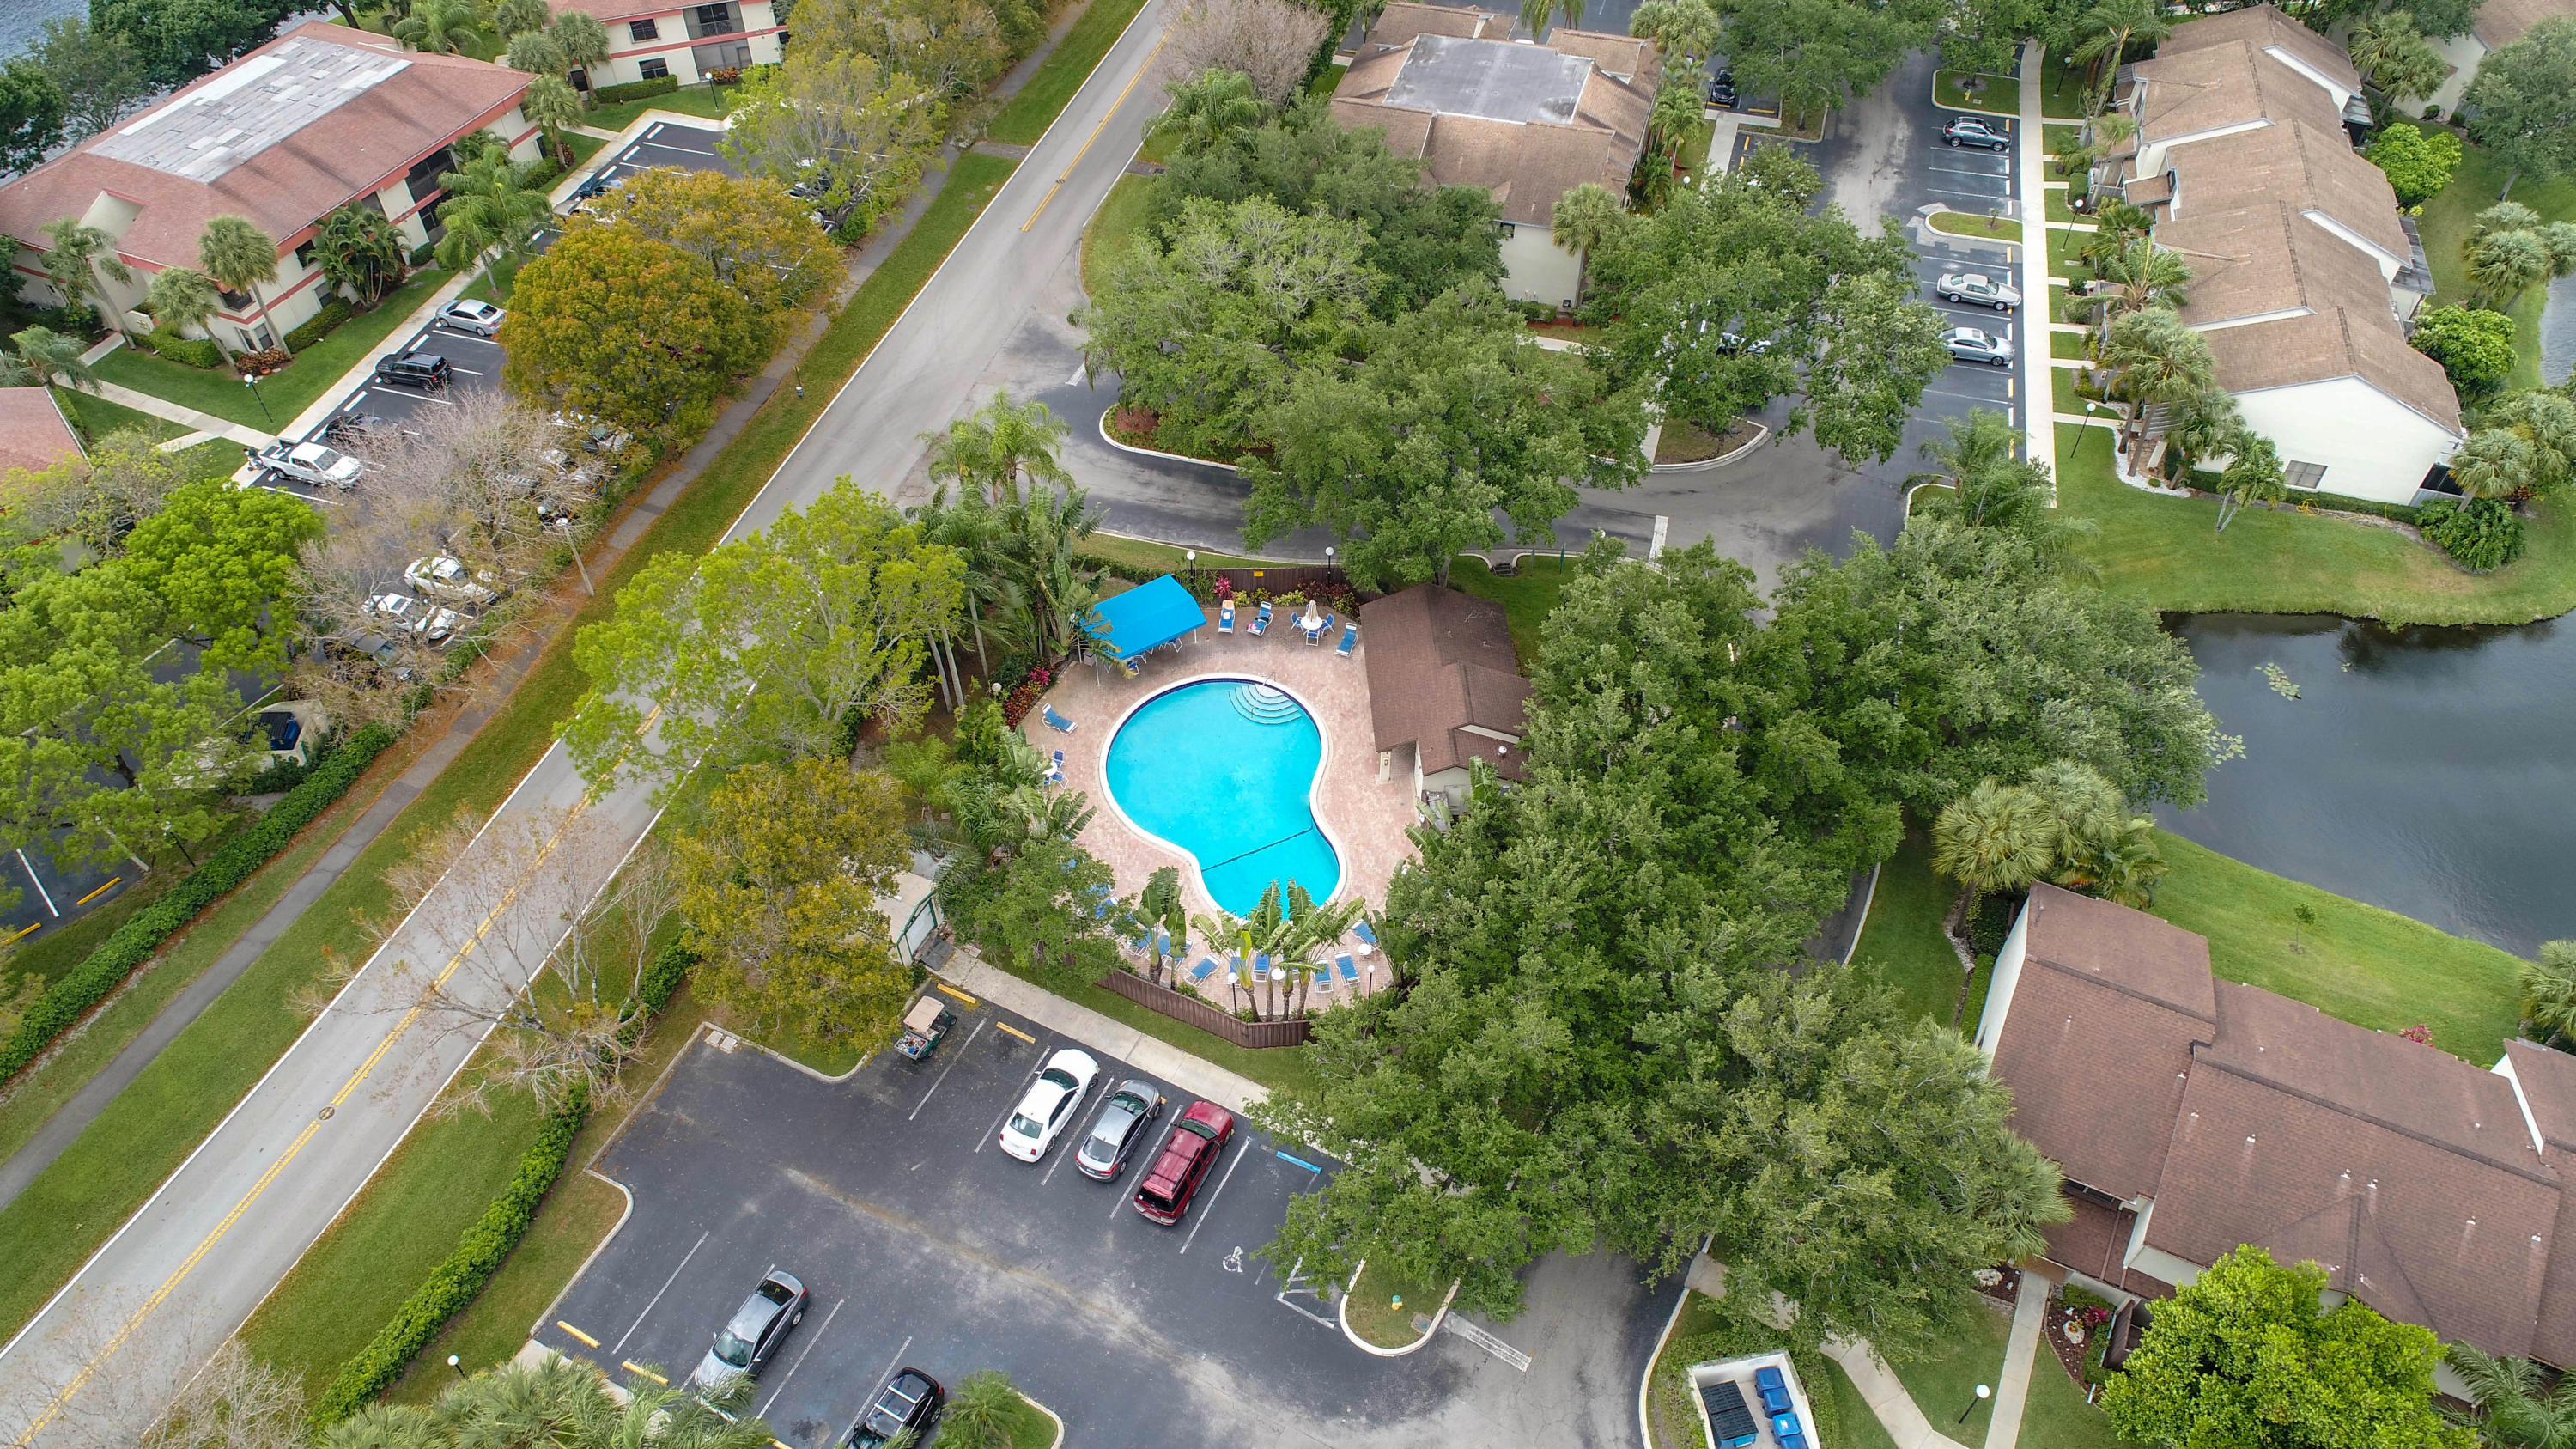 APPLEWOOD VILLAGE 3-A CONDO COCONUT CREEK FLORIDA